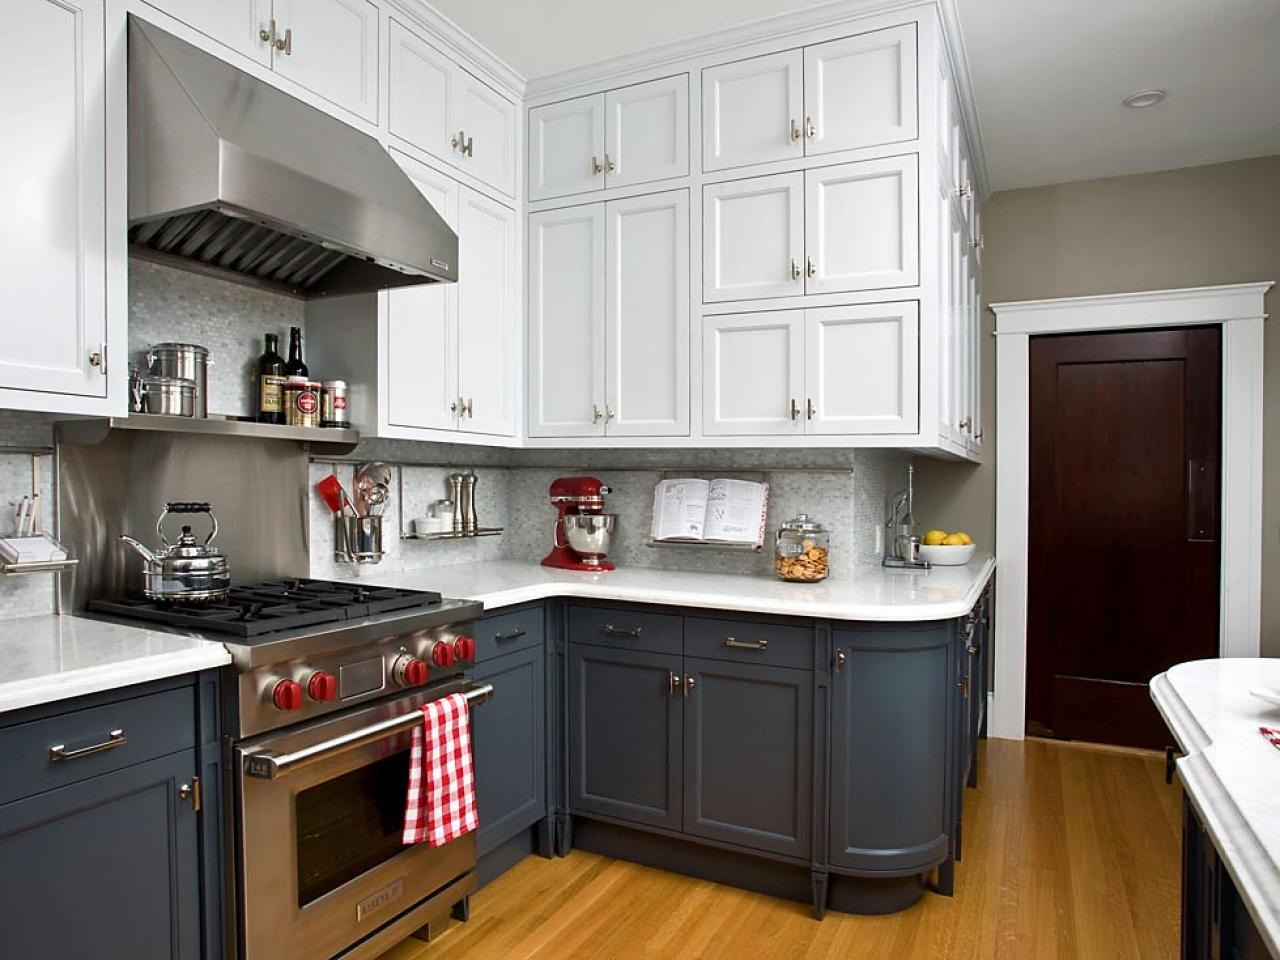 two-tone-kitchen-cabinets-black-and-white-rta-shaker-cabinets